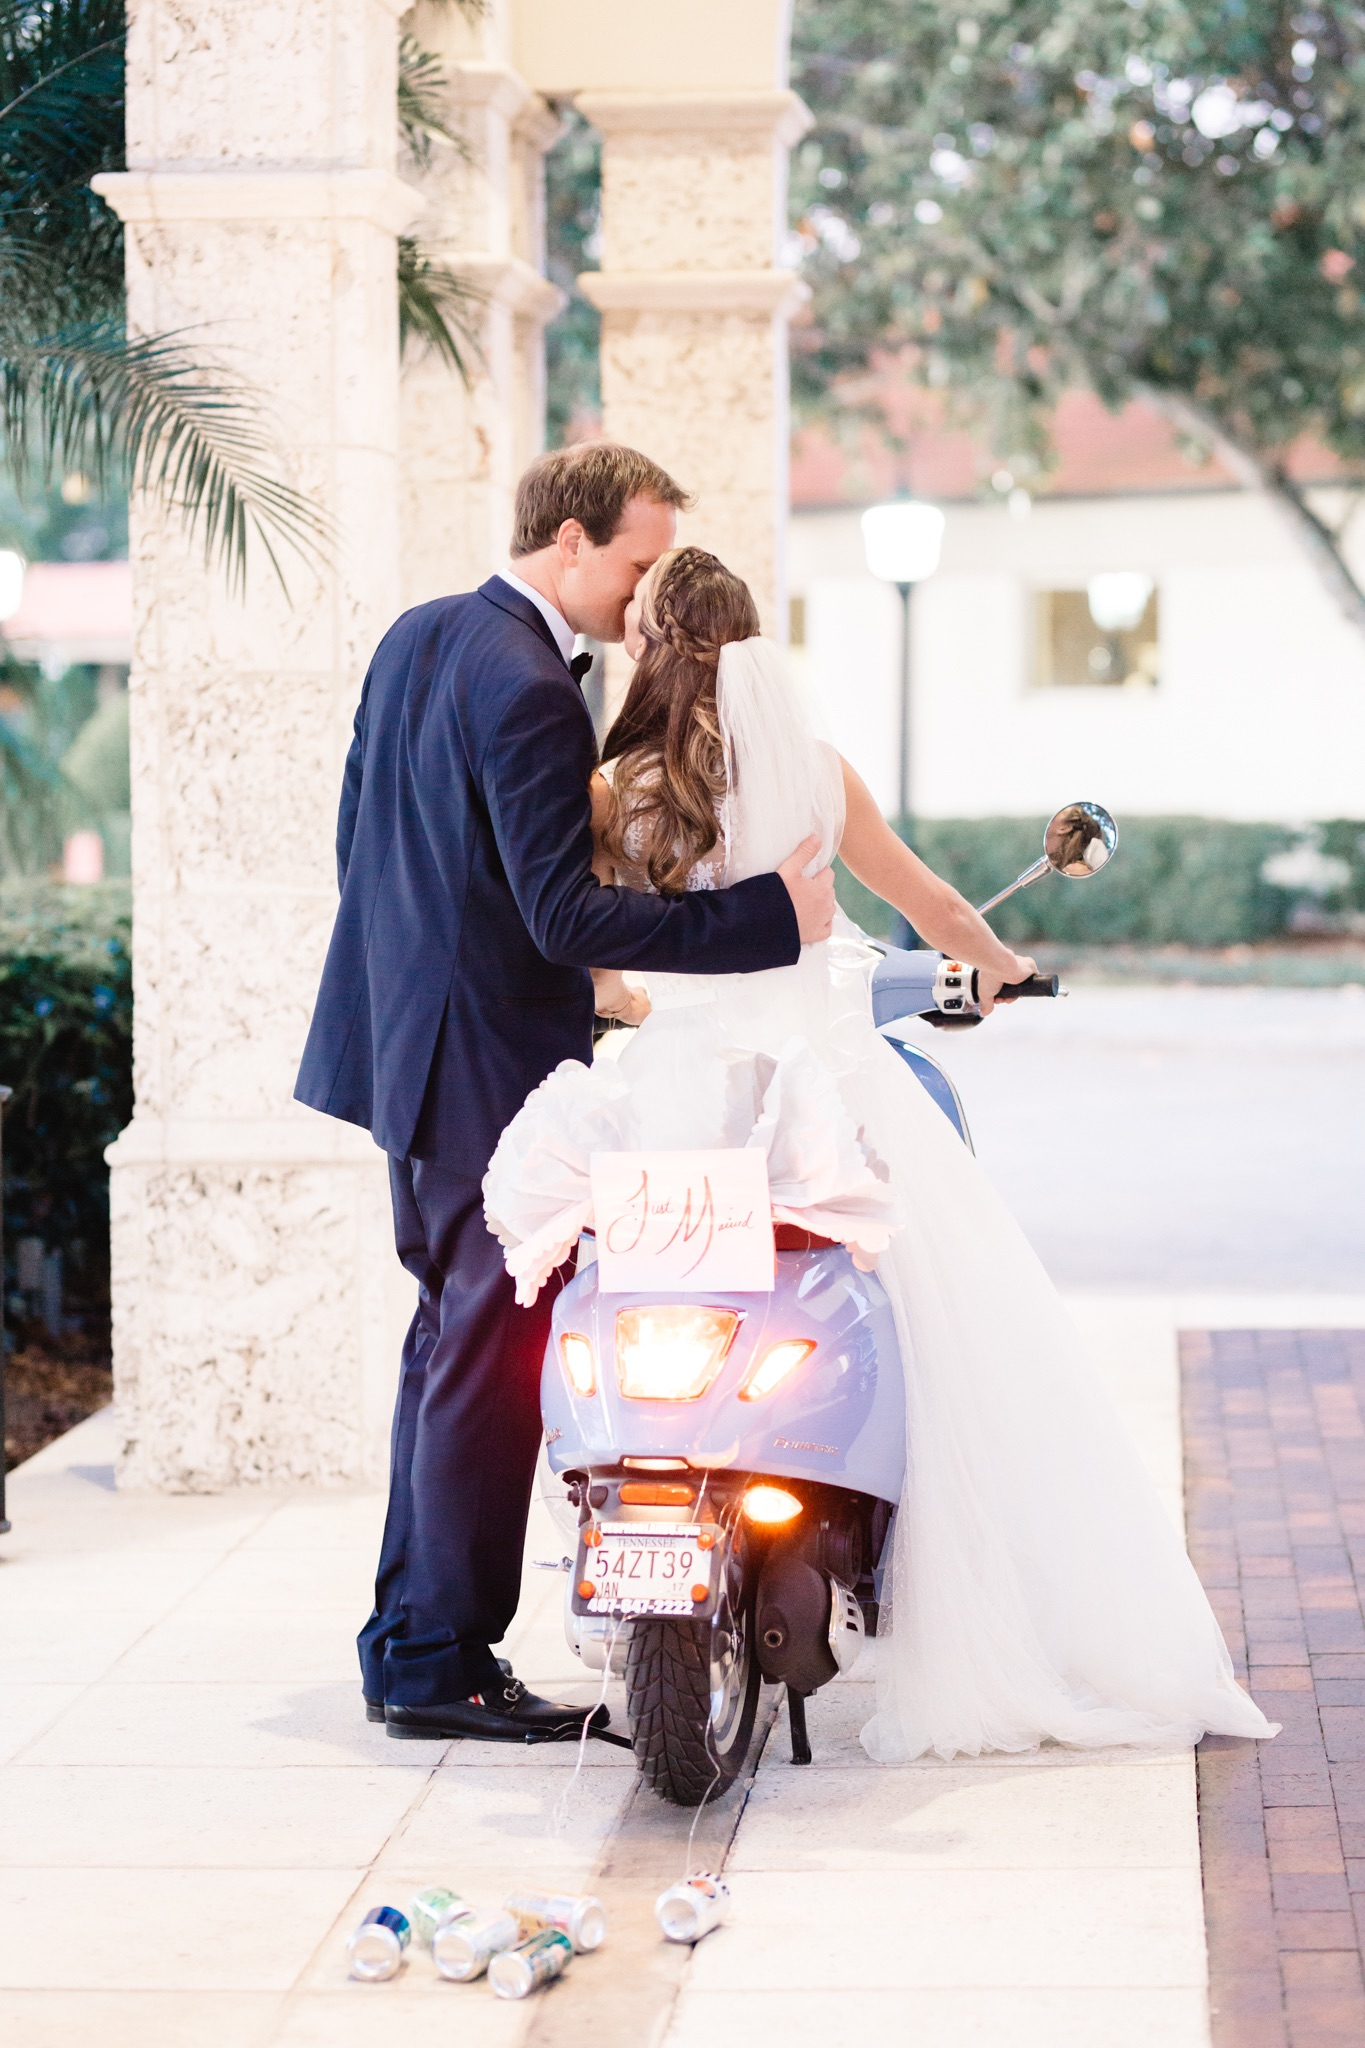 Vespa, the perfect wedding gift